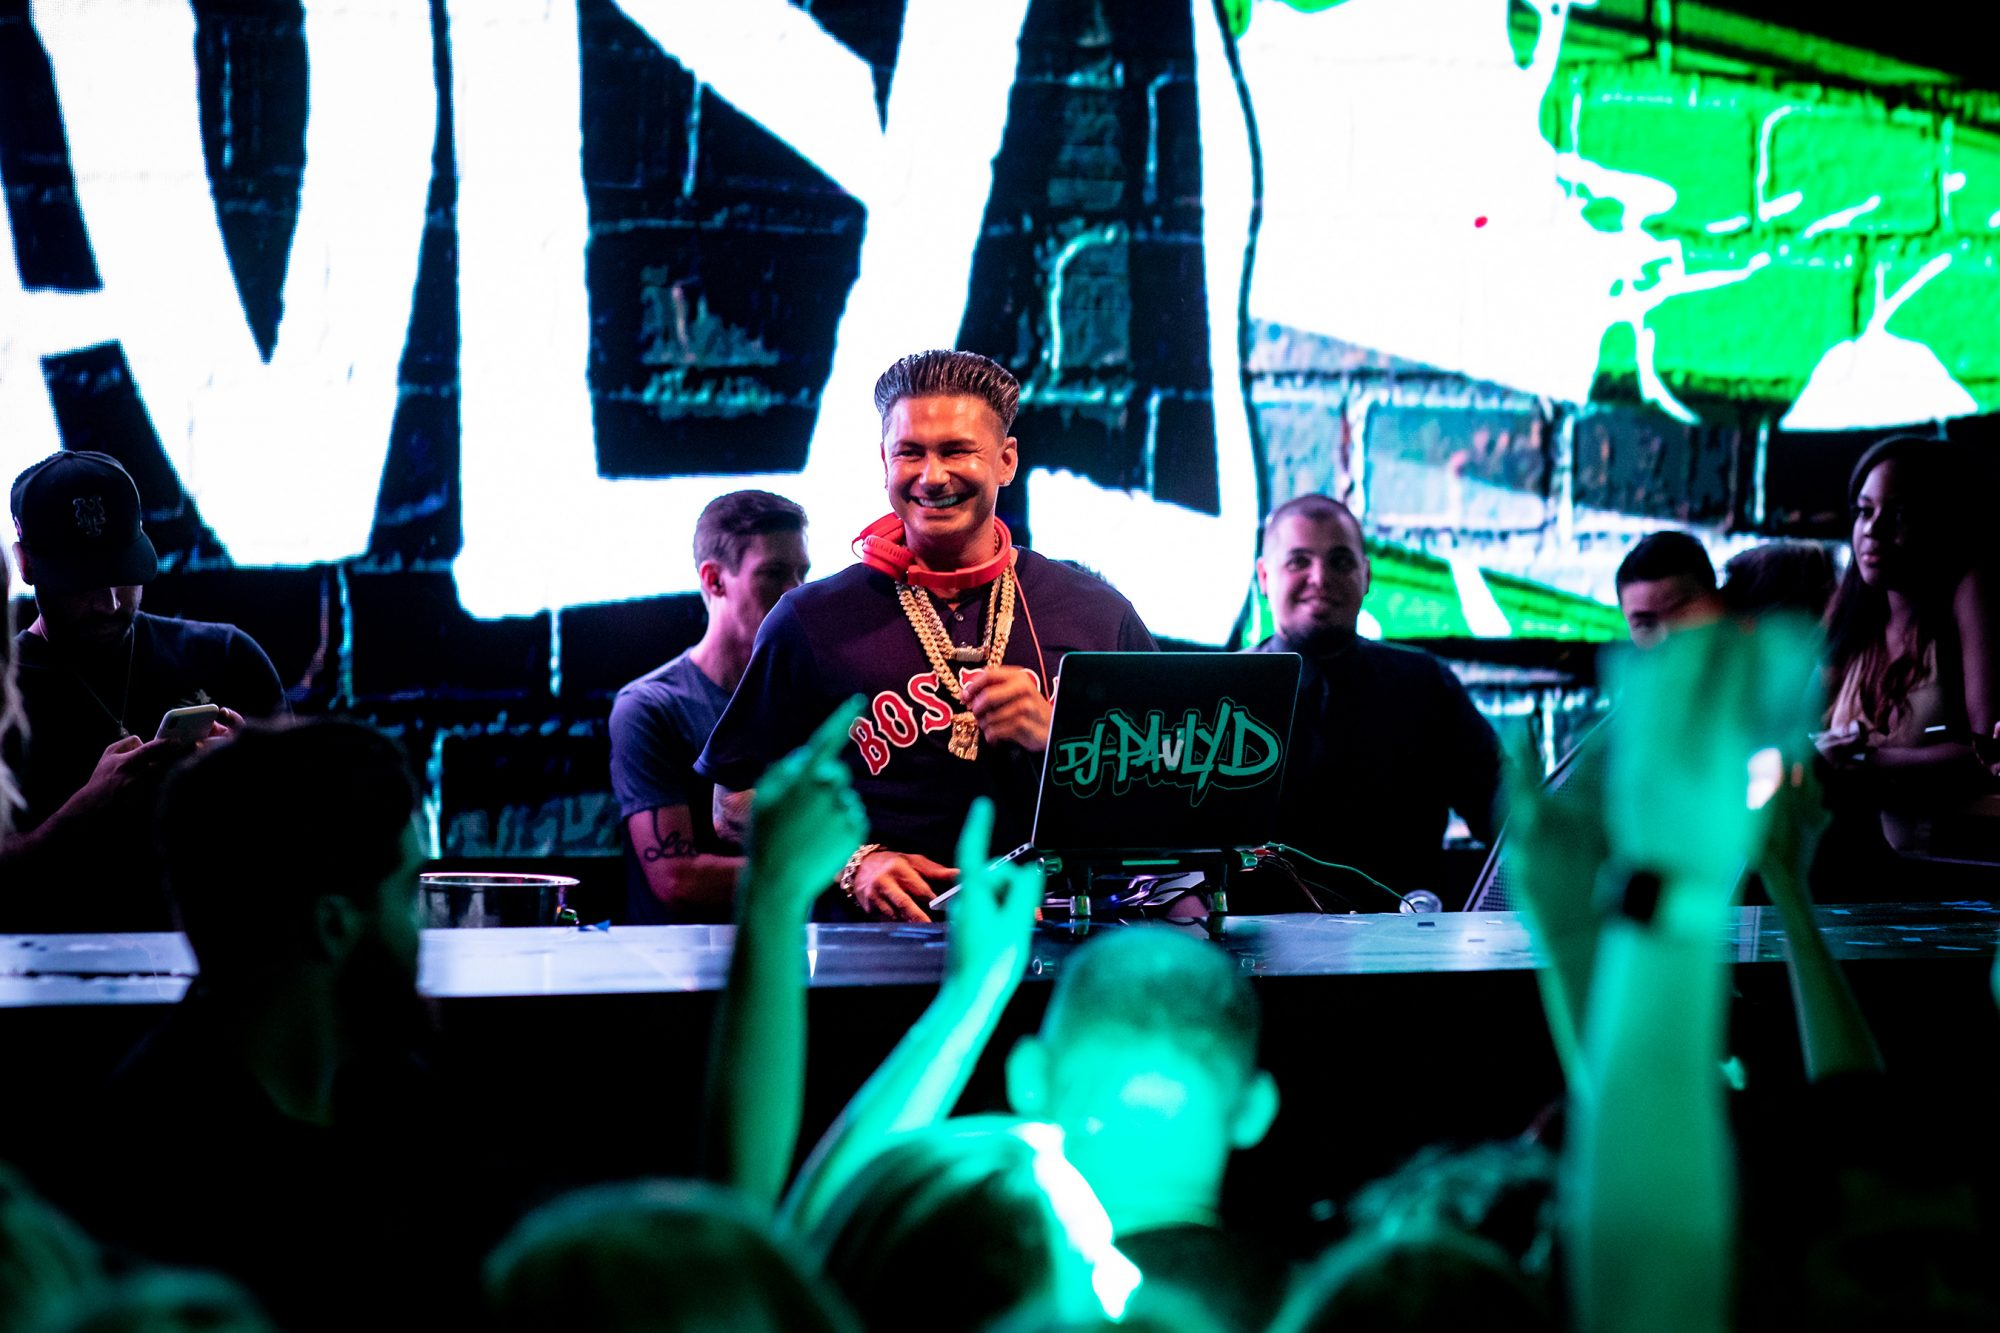 Pauly D DJing and enjoying an early birthday celebration at The Grand in Boston